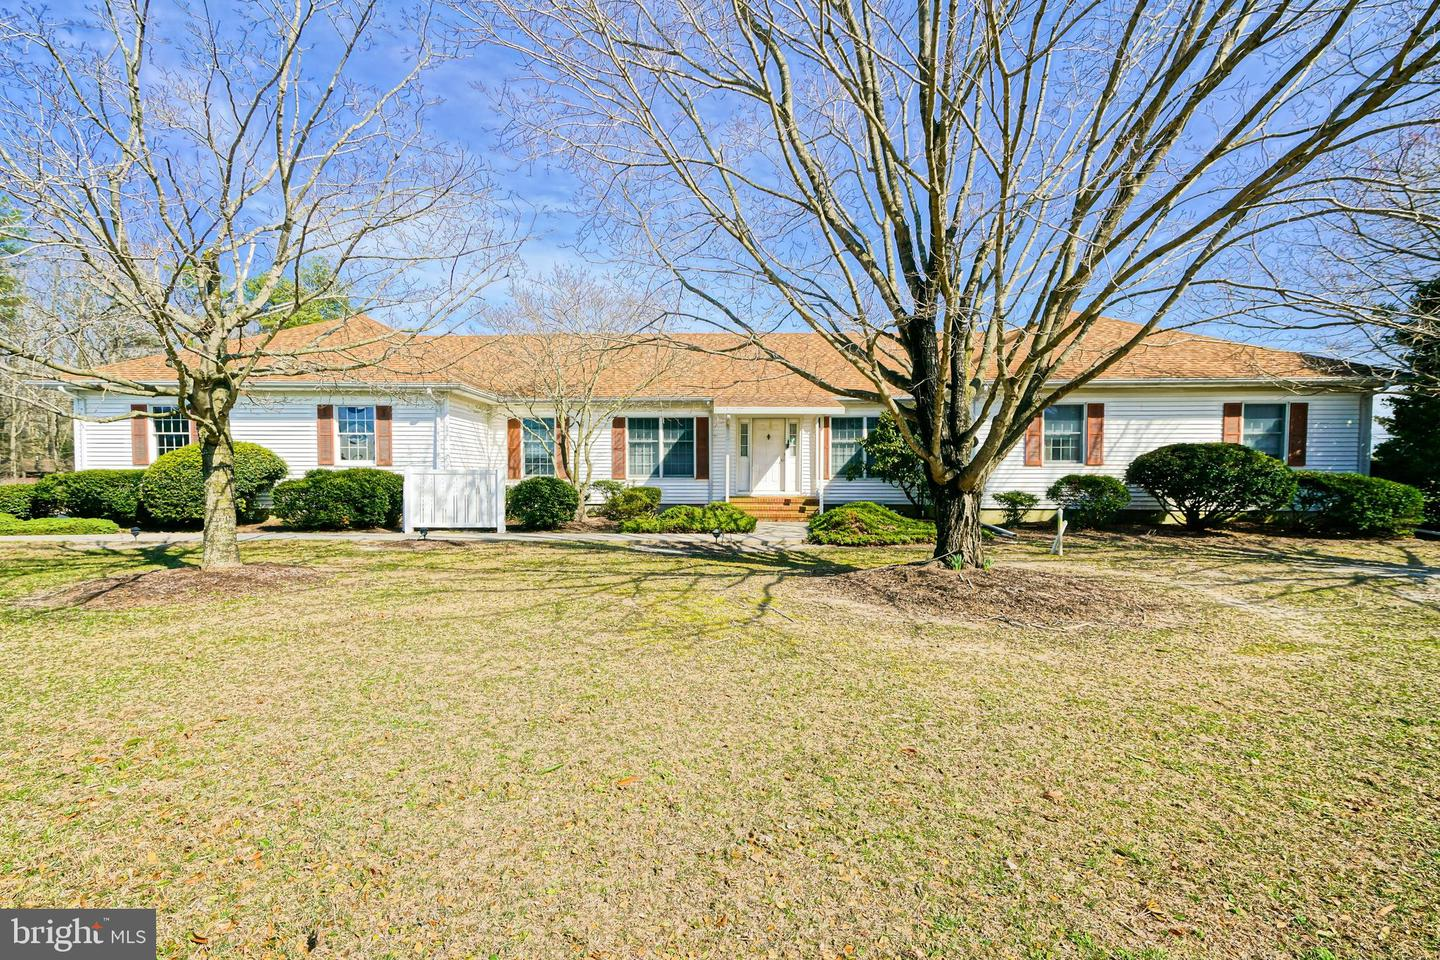 DESU134480-301564204323-2019-06-01-12-00-09 2 Fairway West Dr | Georgetown, DE Real Estate For Sale | MLS# Desu134480  - Lee Ann Group